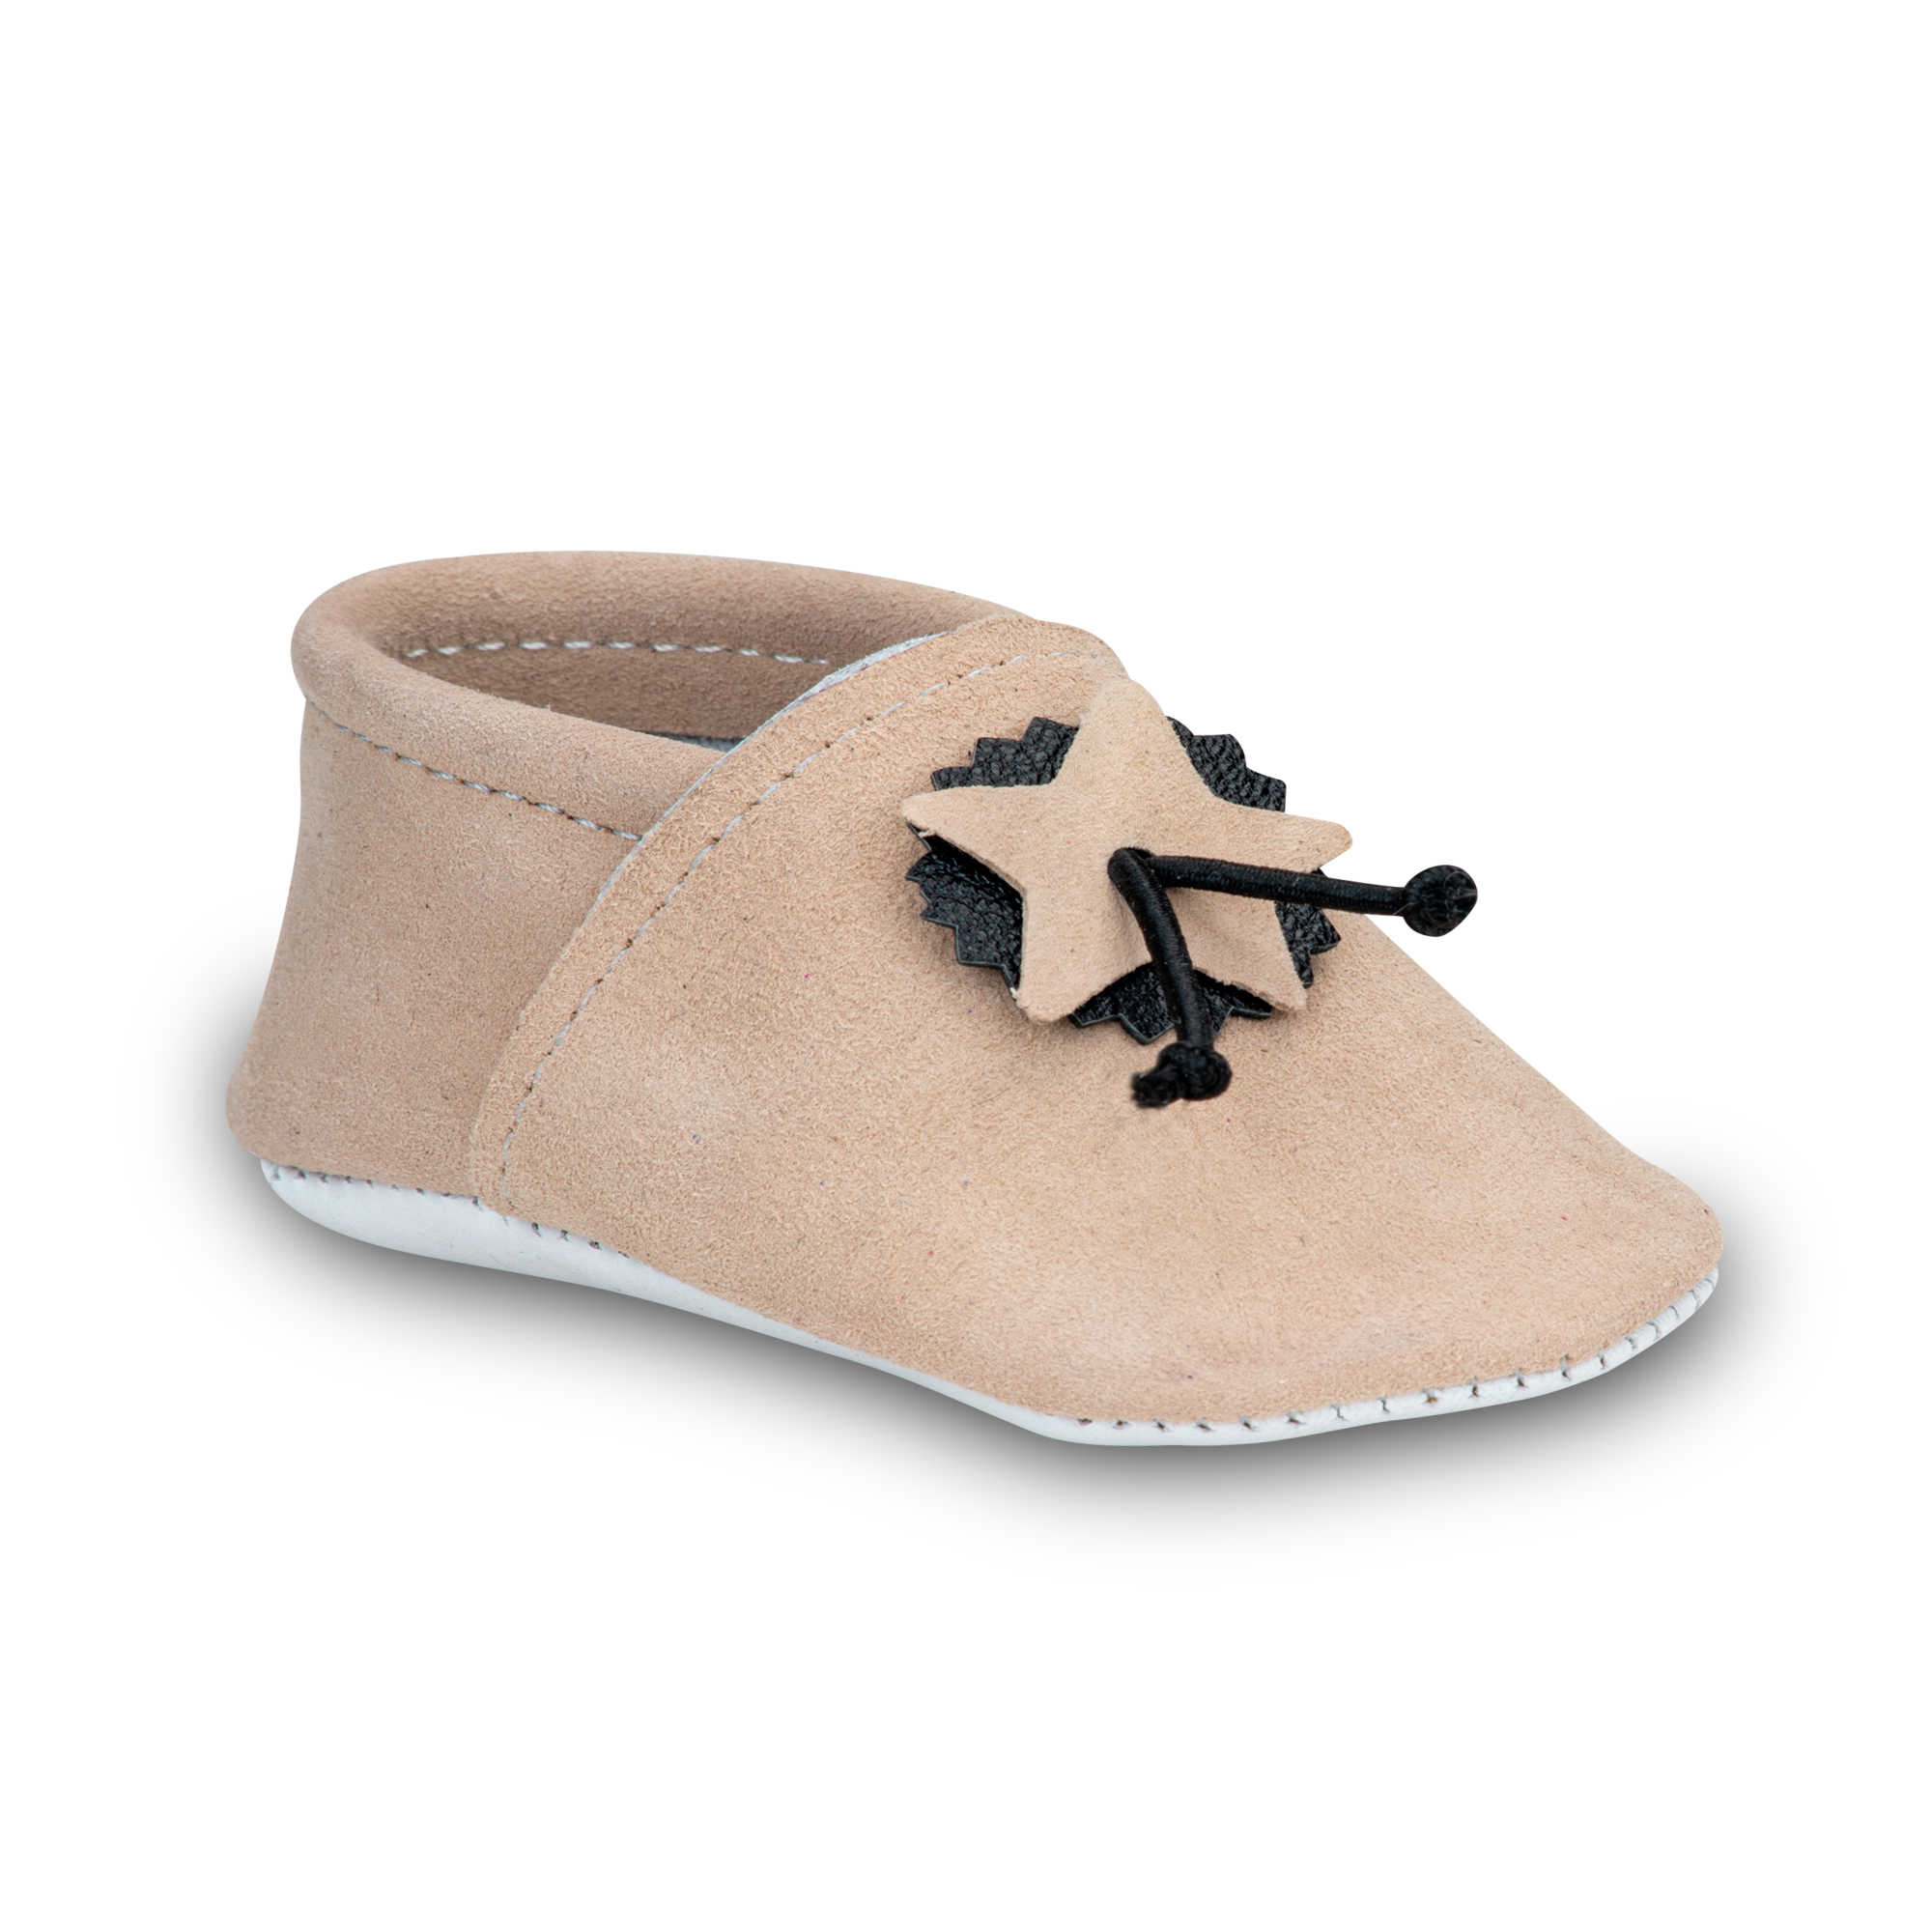 Chaussons Souples Bebe Creme Taille 16